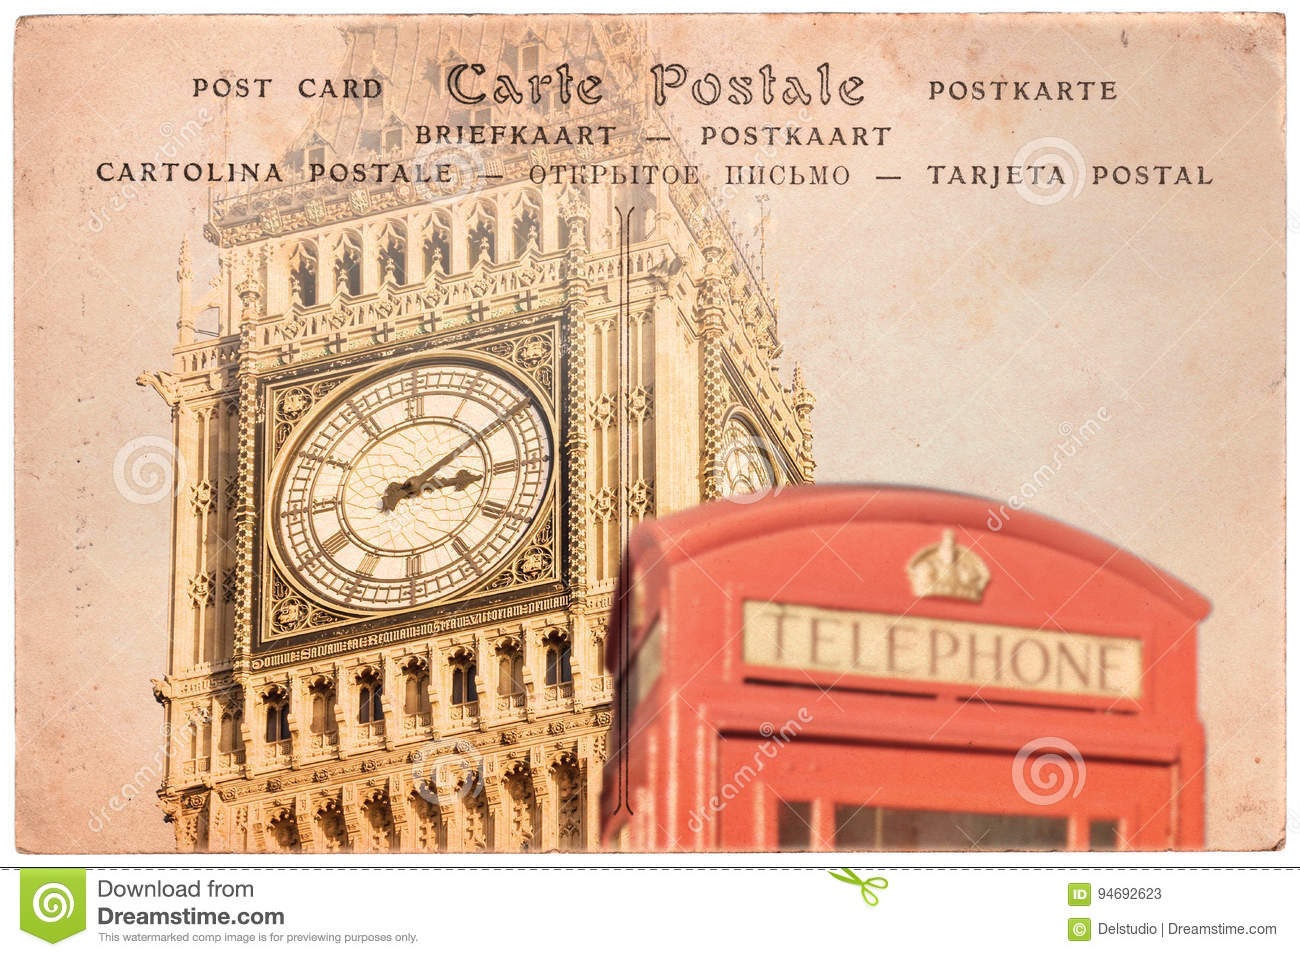 Big Ben and a red english phone booth in London, UK, collage on sepia vintage postcard background, word postcard in severa